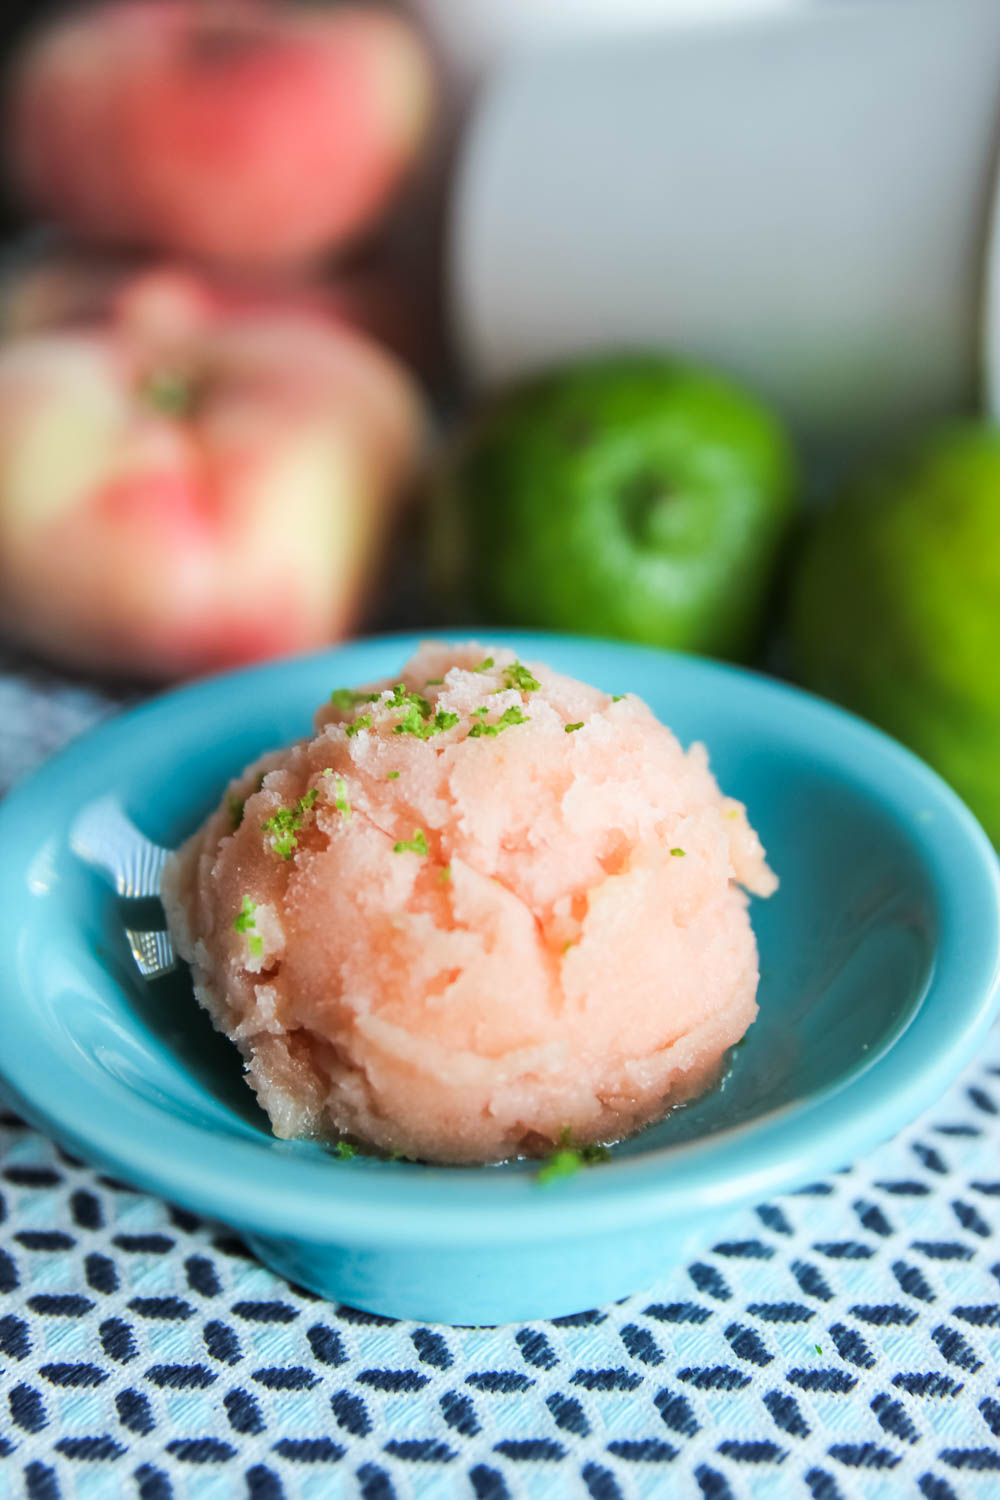 Icy cold and full of flavor. This Roasted Peach and Lime Sorbet is a seriously refreshing dessert, perfect for a hot summer day.